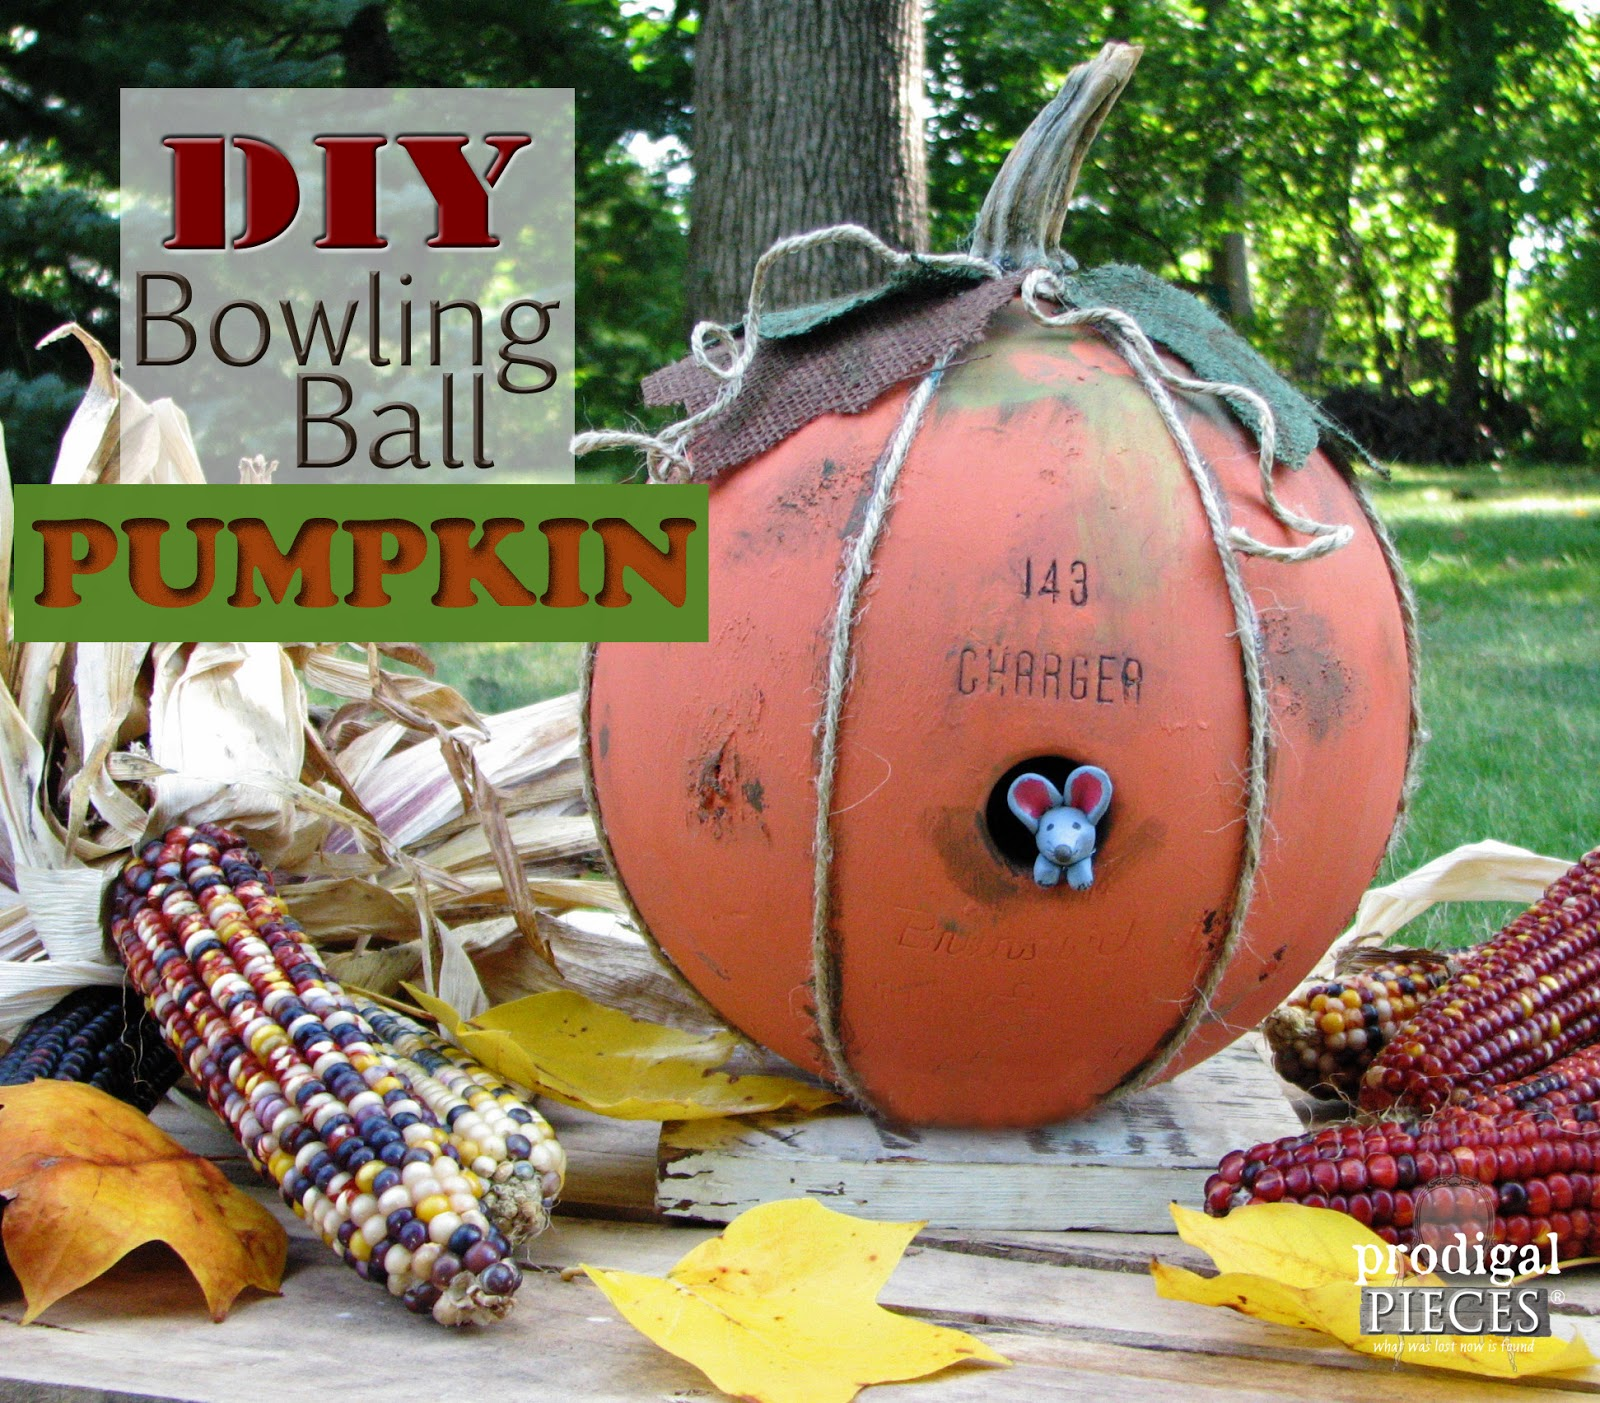 DIY Bowling Ball Repurposed into Pumpkin by Prodigal Pieces http://www.prodigalpieces.com